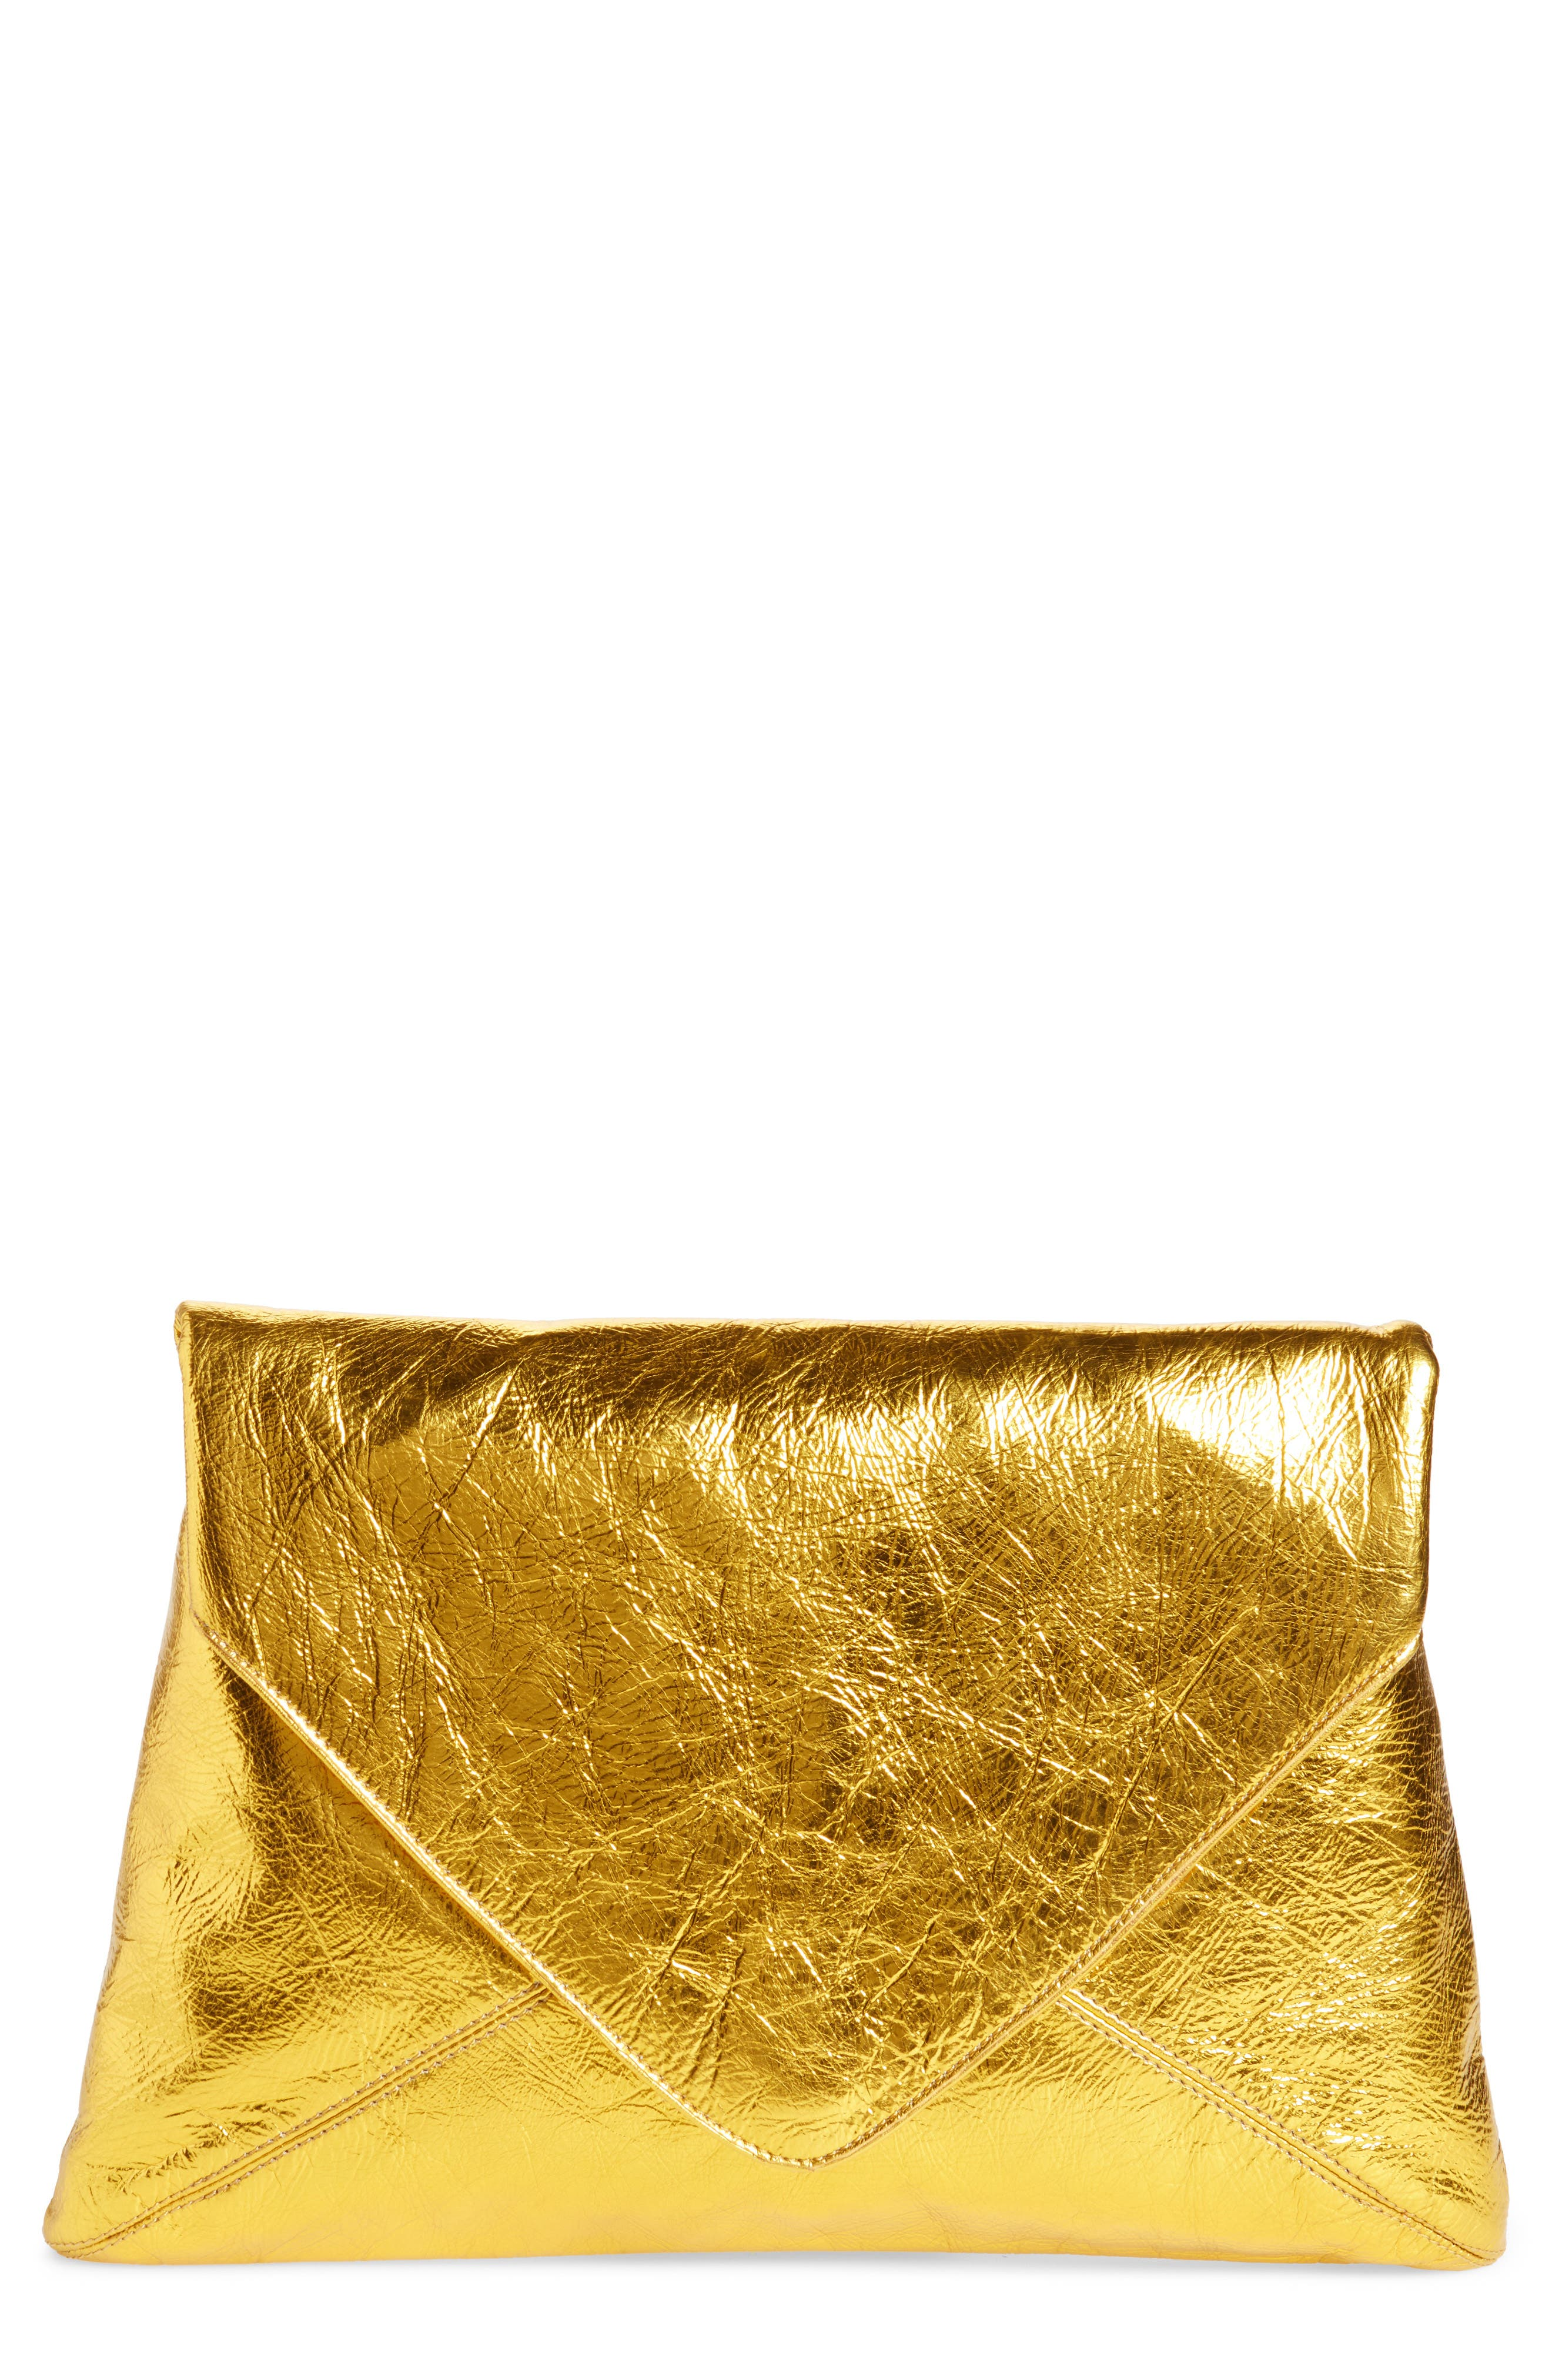 Metallic Leather Envelope Clutch,                             Main thumbnail 1, color,                             Gold